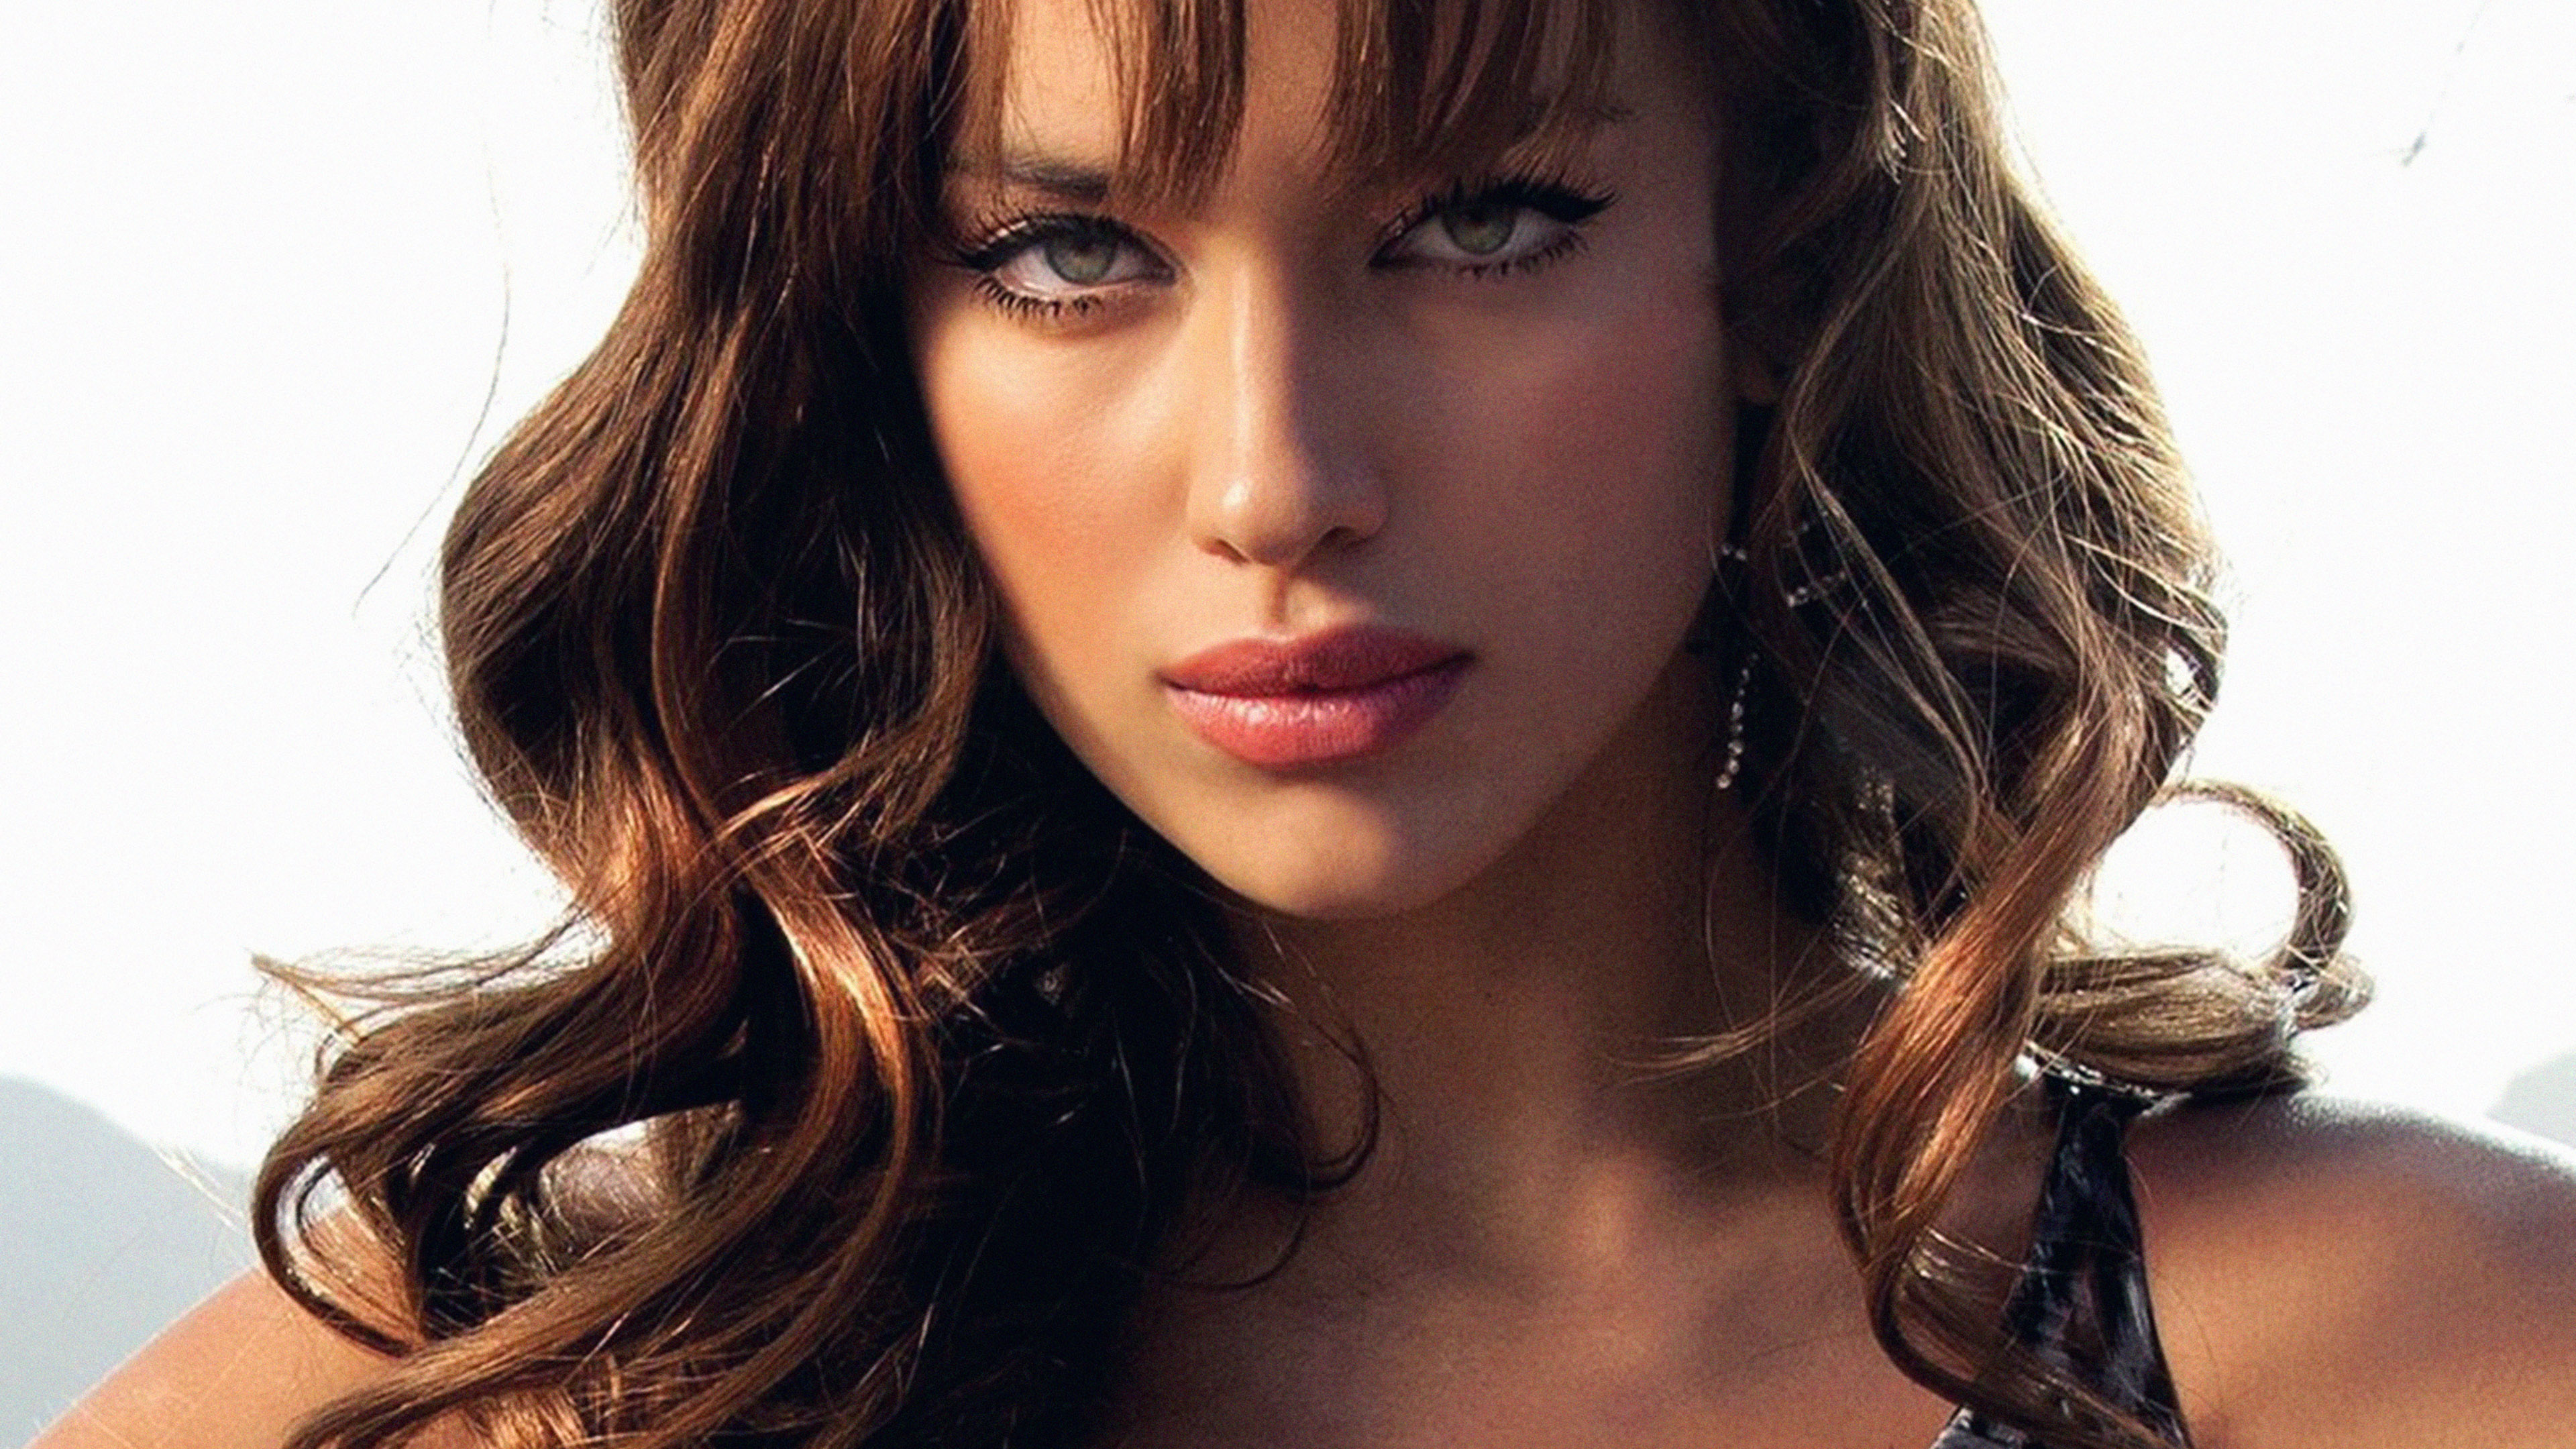 Makeup Iphone Wallpaper Ha86 Wallpaper Irina Shayk Girl Face Sexy Papers Co